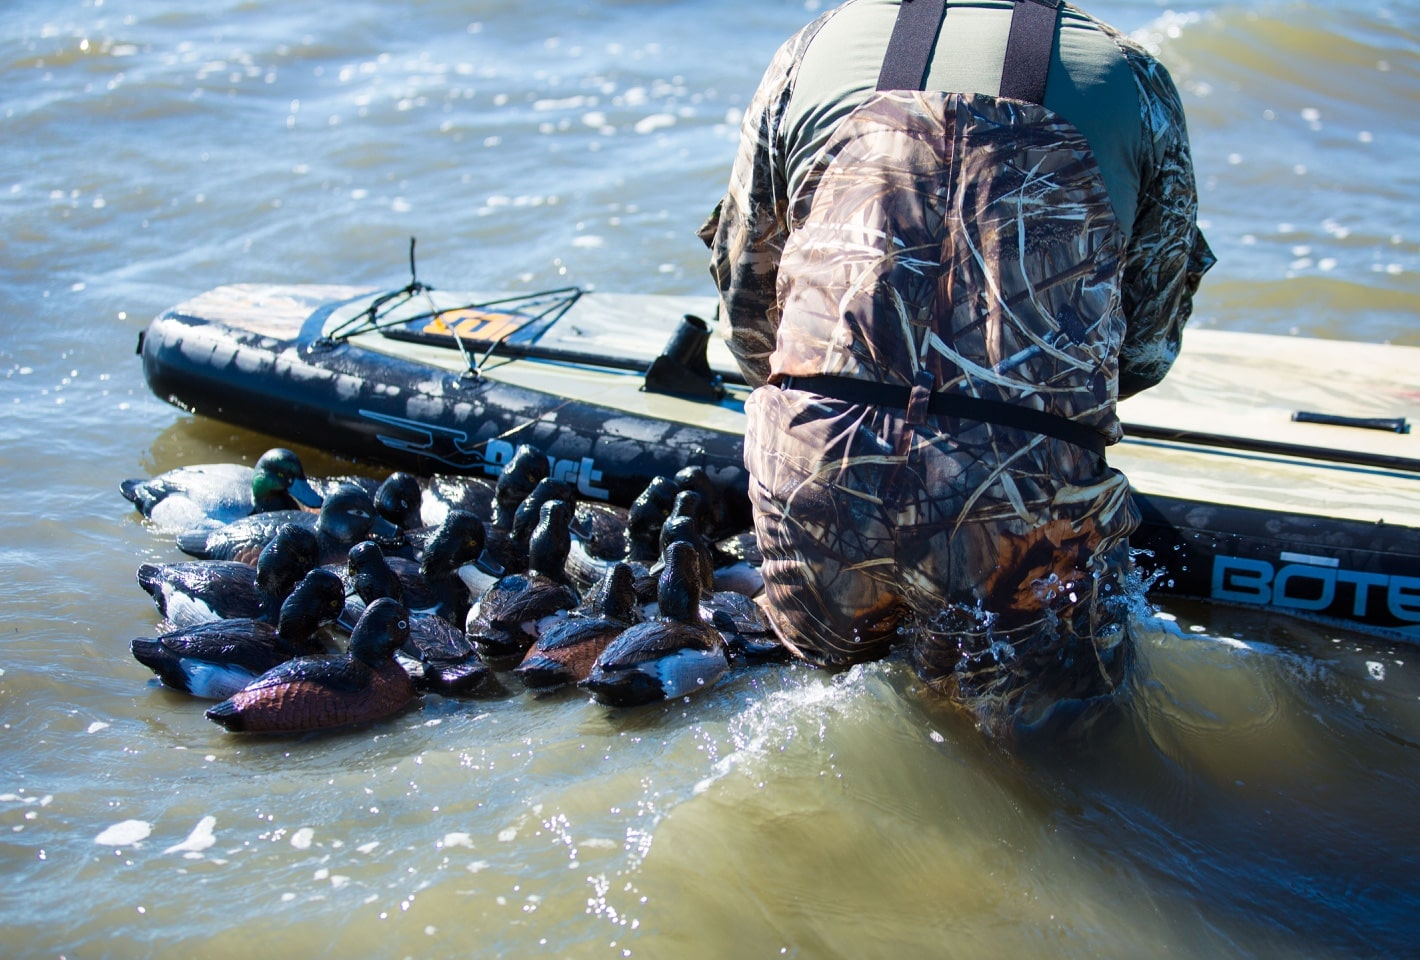 duck hunting on BOTE inflatable paddle board with decoys